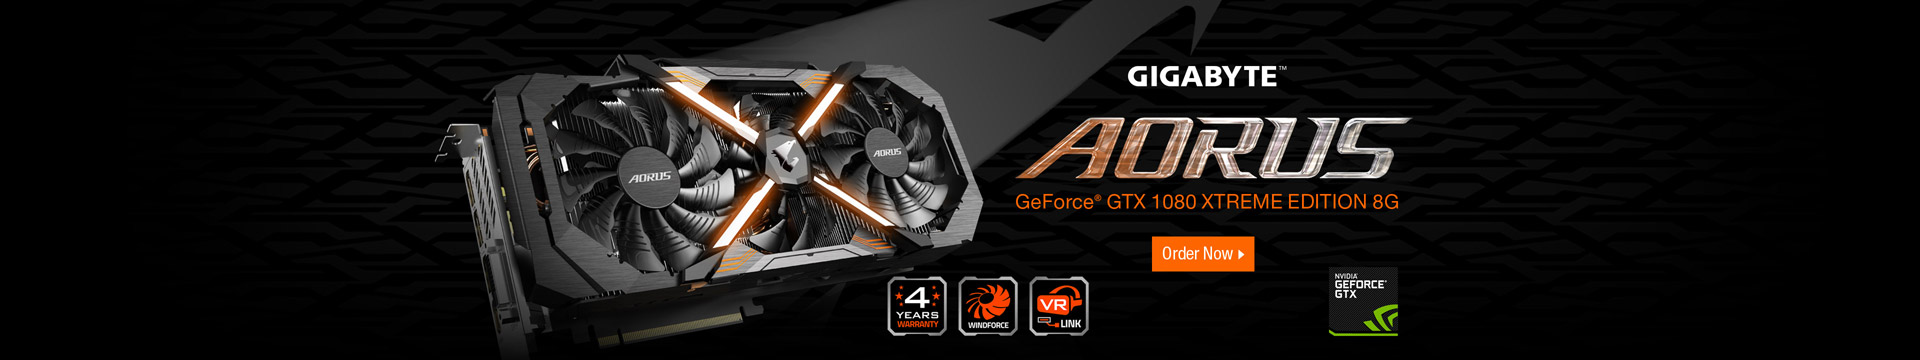 GeForce® GTX 1080 XTREME EDITION 8G